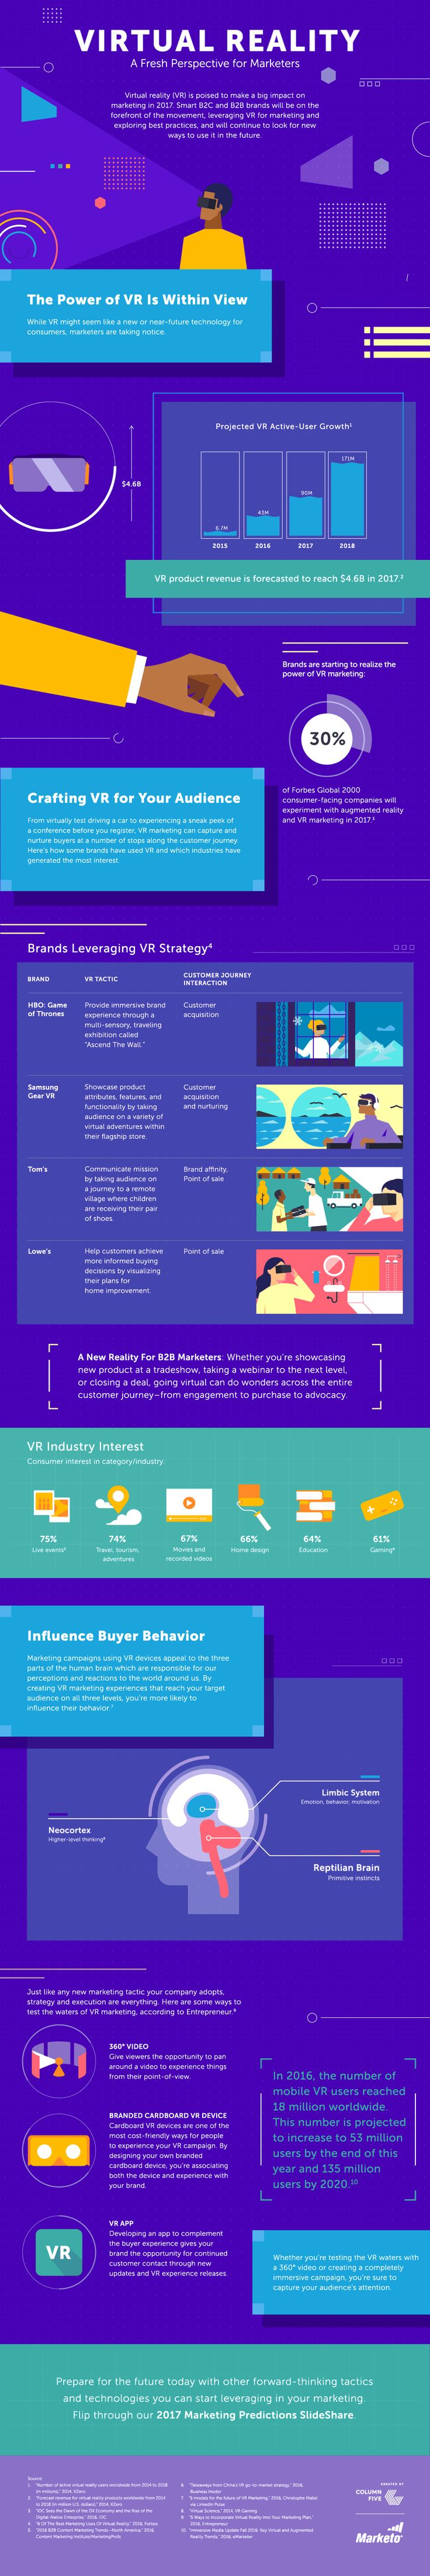 Virtual Reality: A Fresh Perspective for Marketers - #infographic